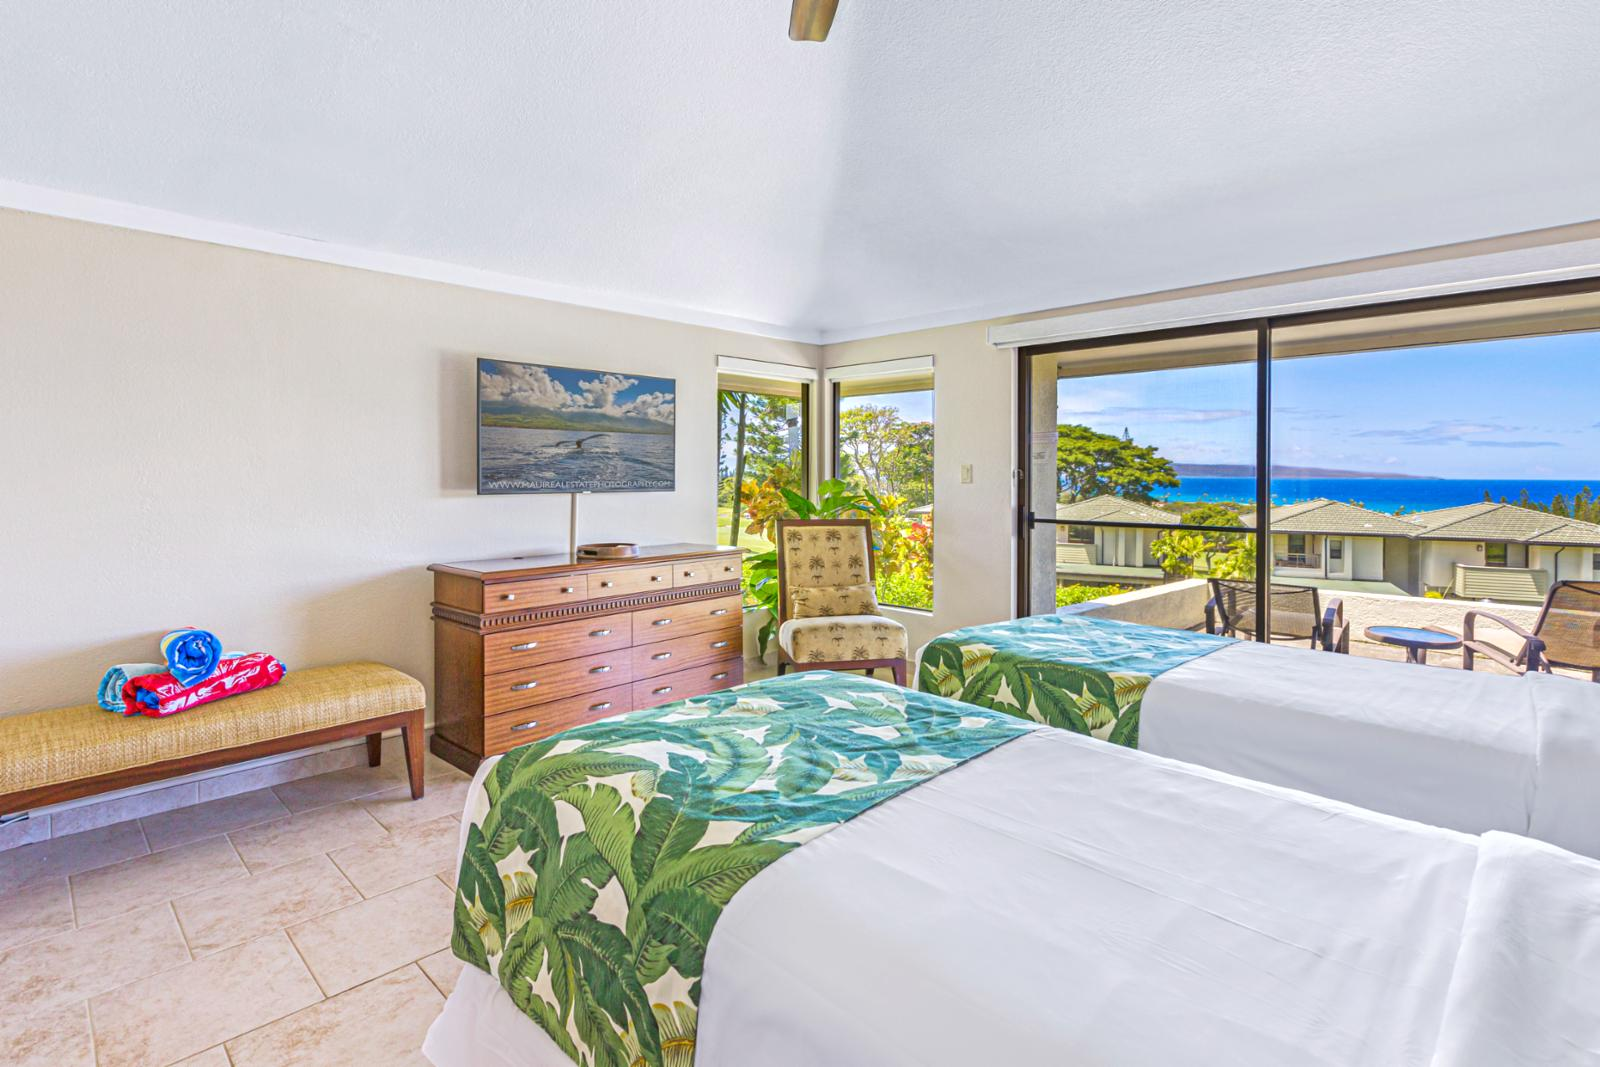 Stunning views of the ocean right from this amazing guest bedroom!